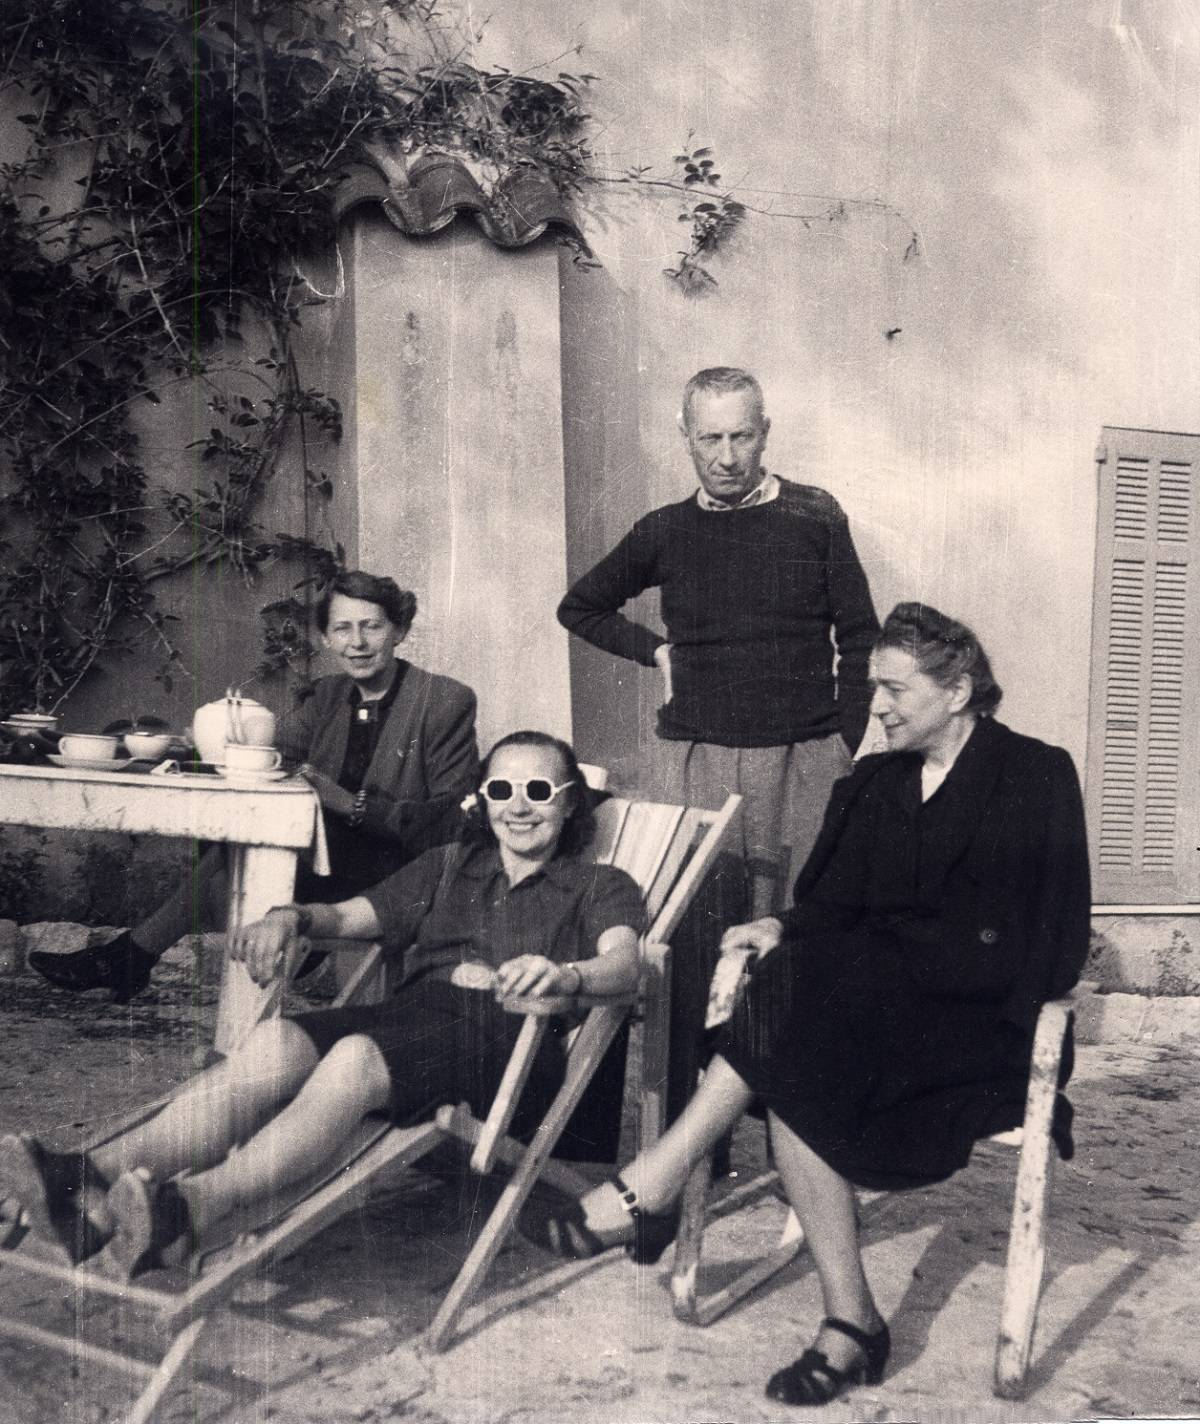 Sophie Taeuber-Arp, Nelly van Doesburg, Hans Arpi Sonia Delaunay, Grasse